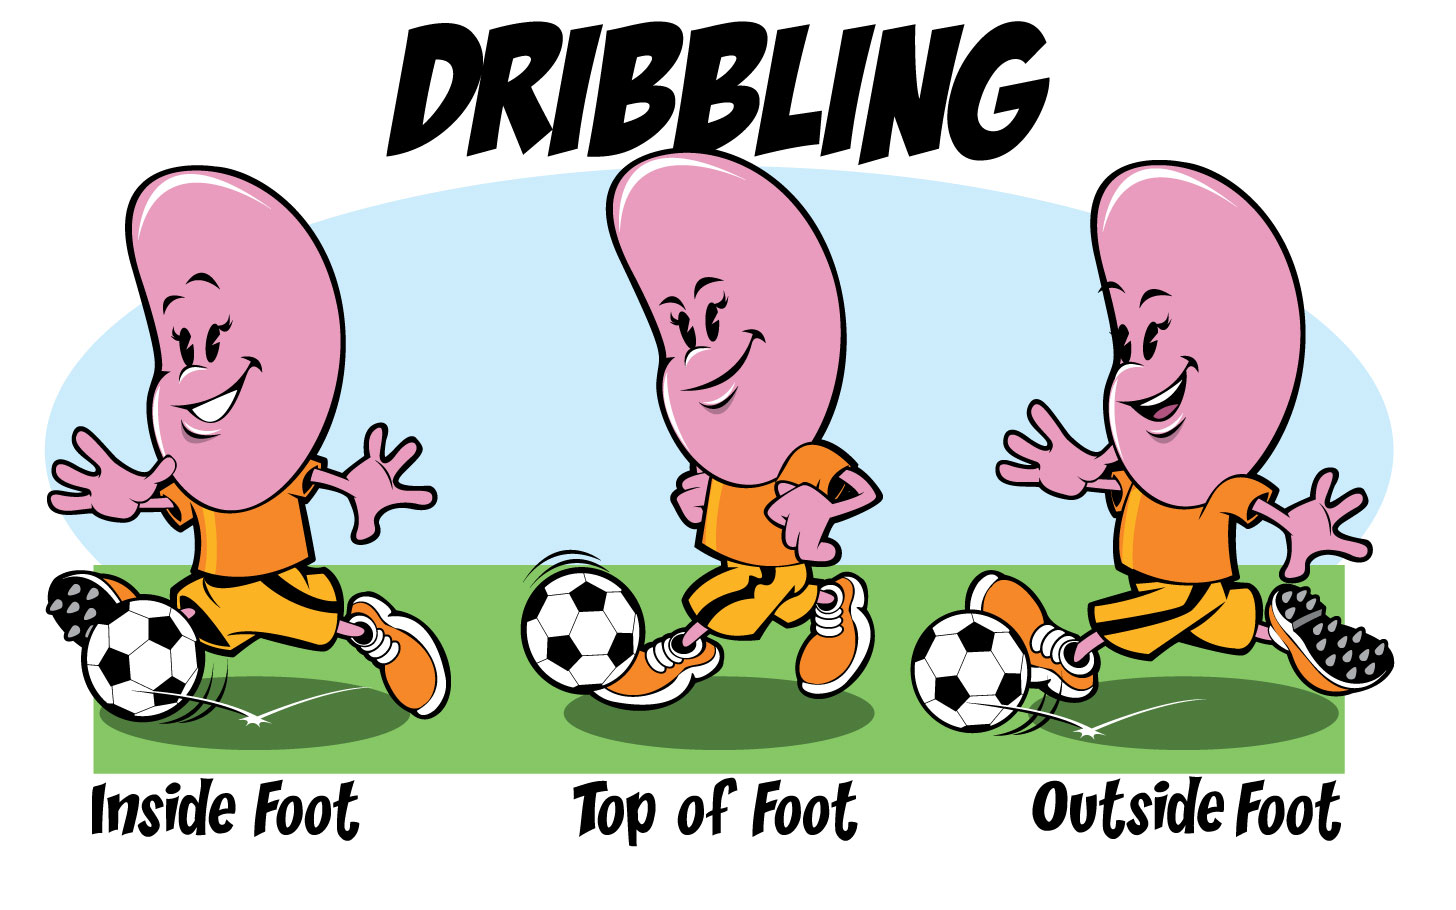 3 types of dribbling